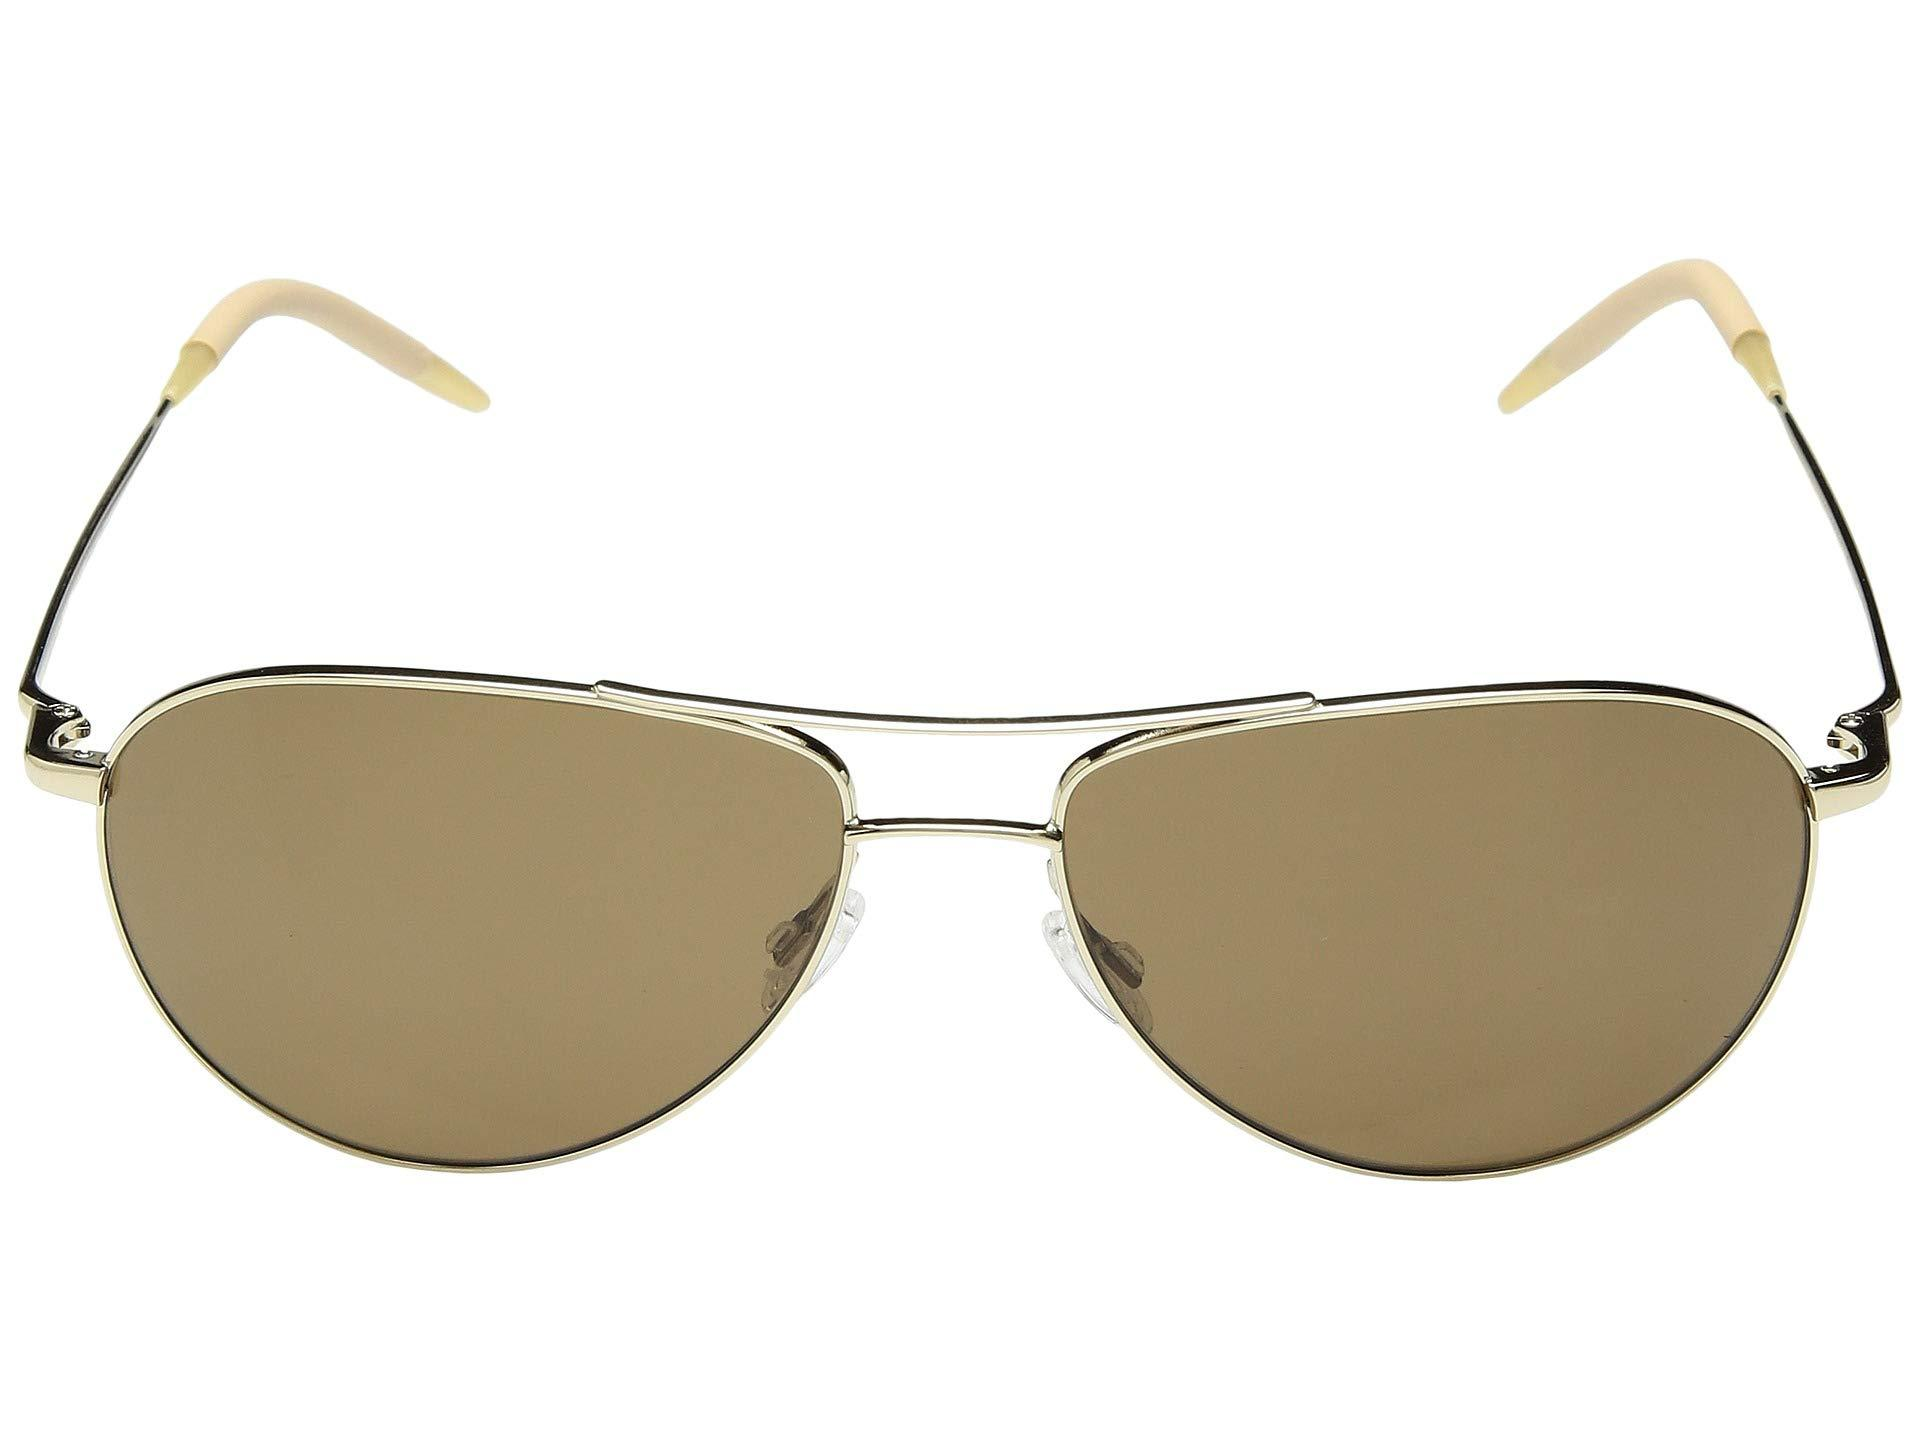 4b555870b3d Oliver Peoples - Multicolor Benedict (gold brown Lens) Fashion Sunglasses  for Men -. View fullscreen